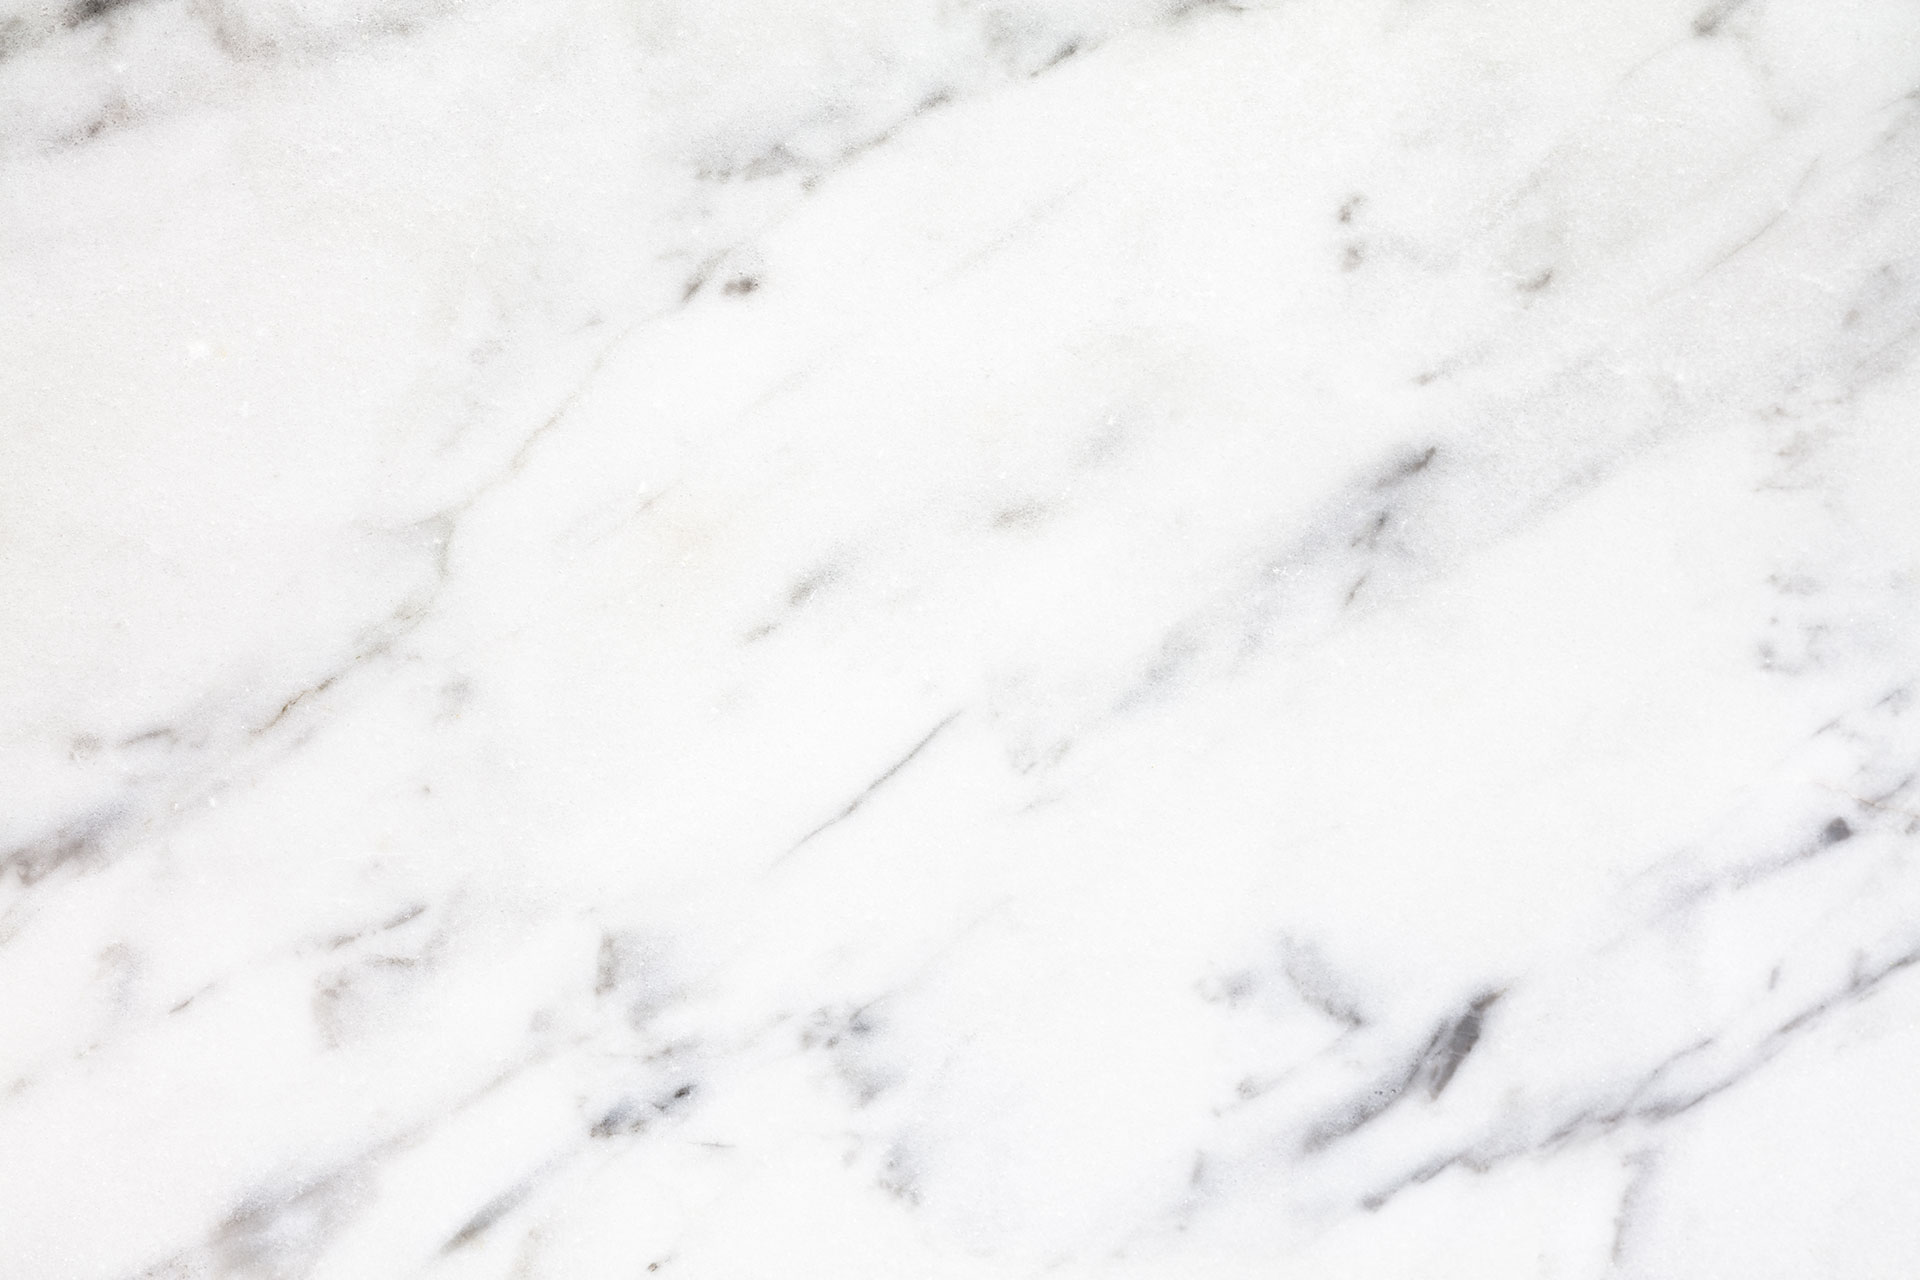 Marble Kitchen Countertops for Durham Region - Manulock Construction